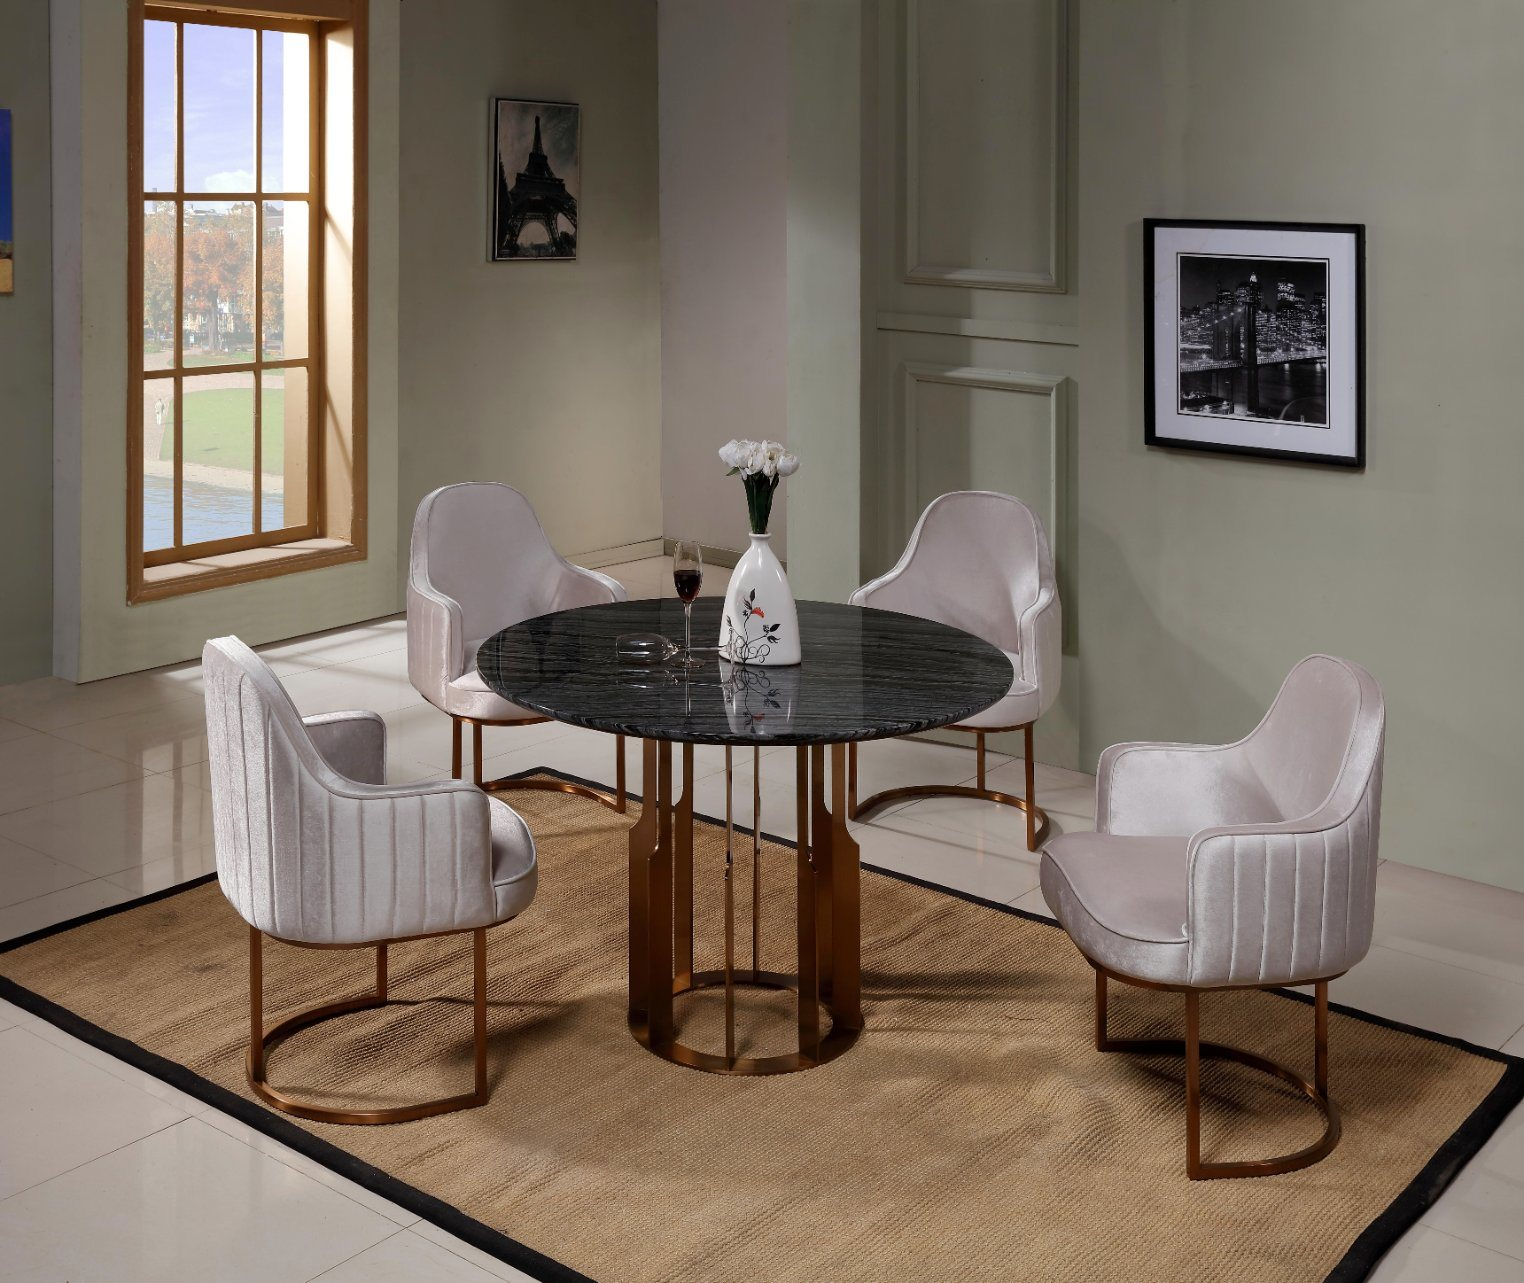 China Fashion Modern Home Coffee Table Chair Set Furniture Dining Room Sets One Table With 6 Chairs China Furniture Coffee Table